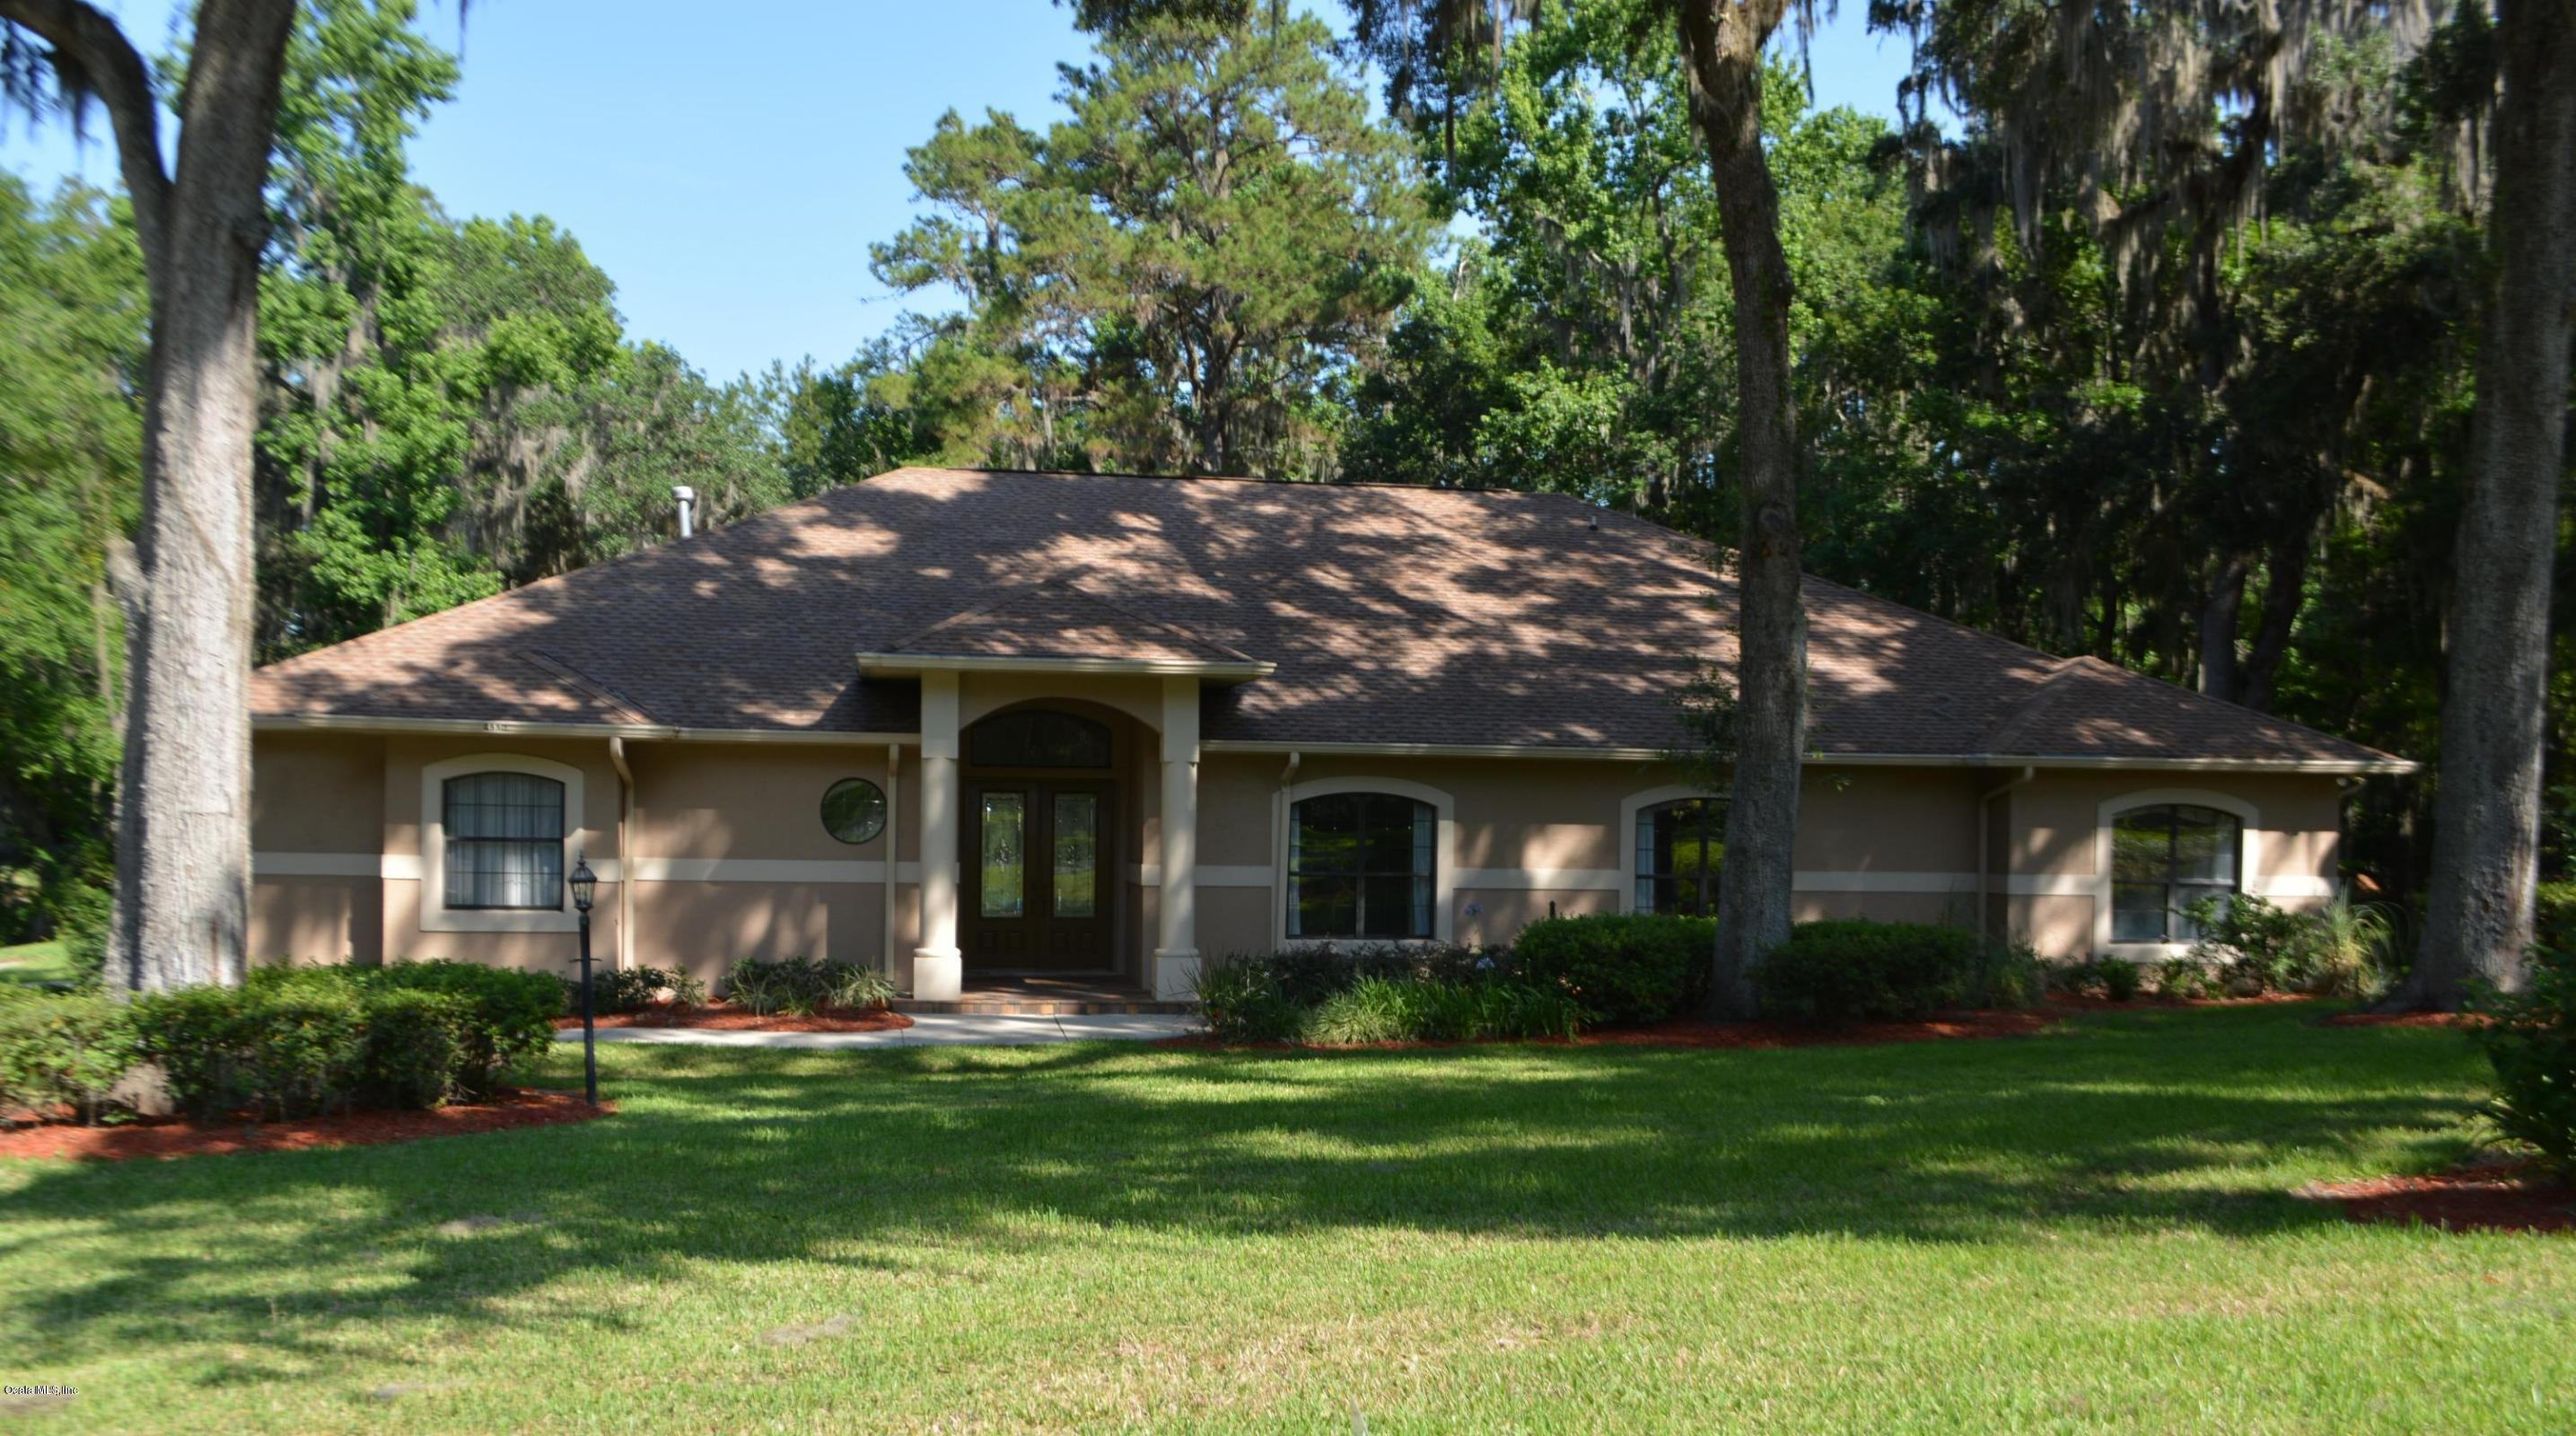 4550 NW 82ND COURT, OCALA, FL 34482